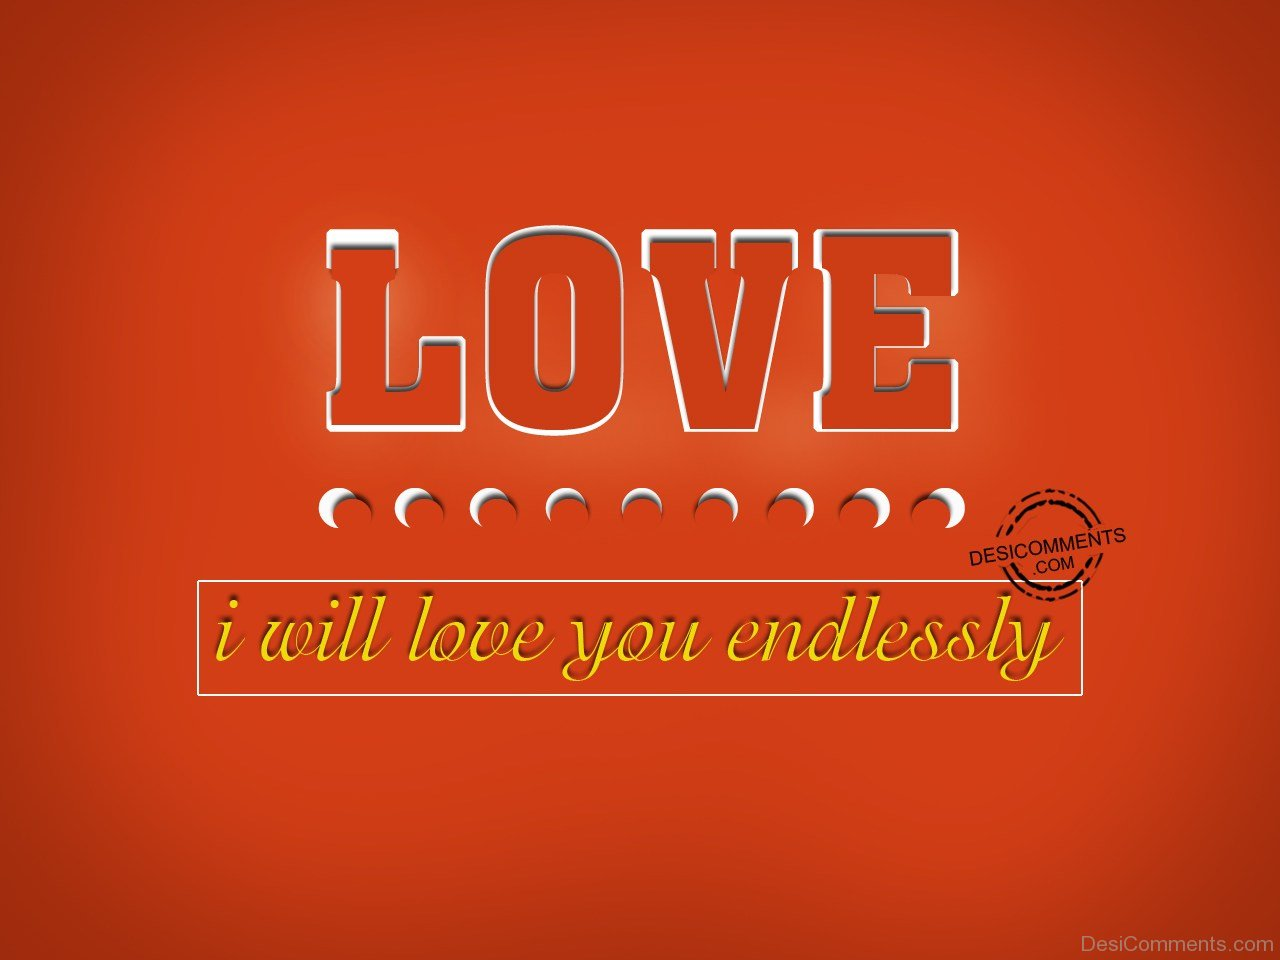 I Will Love You Endlessly - DesiComments.com